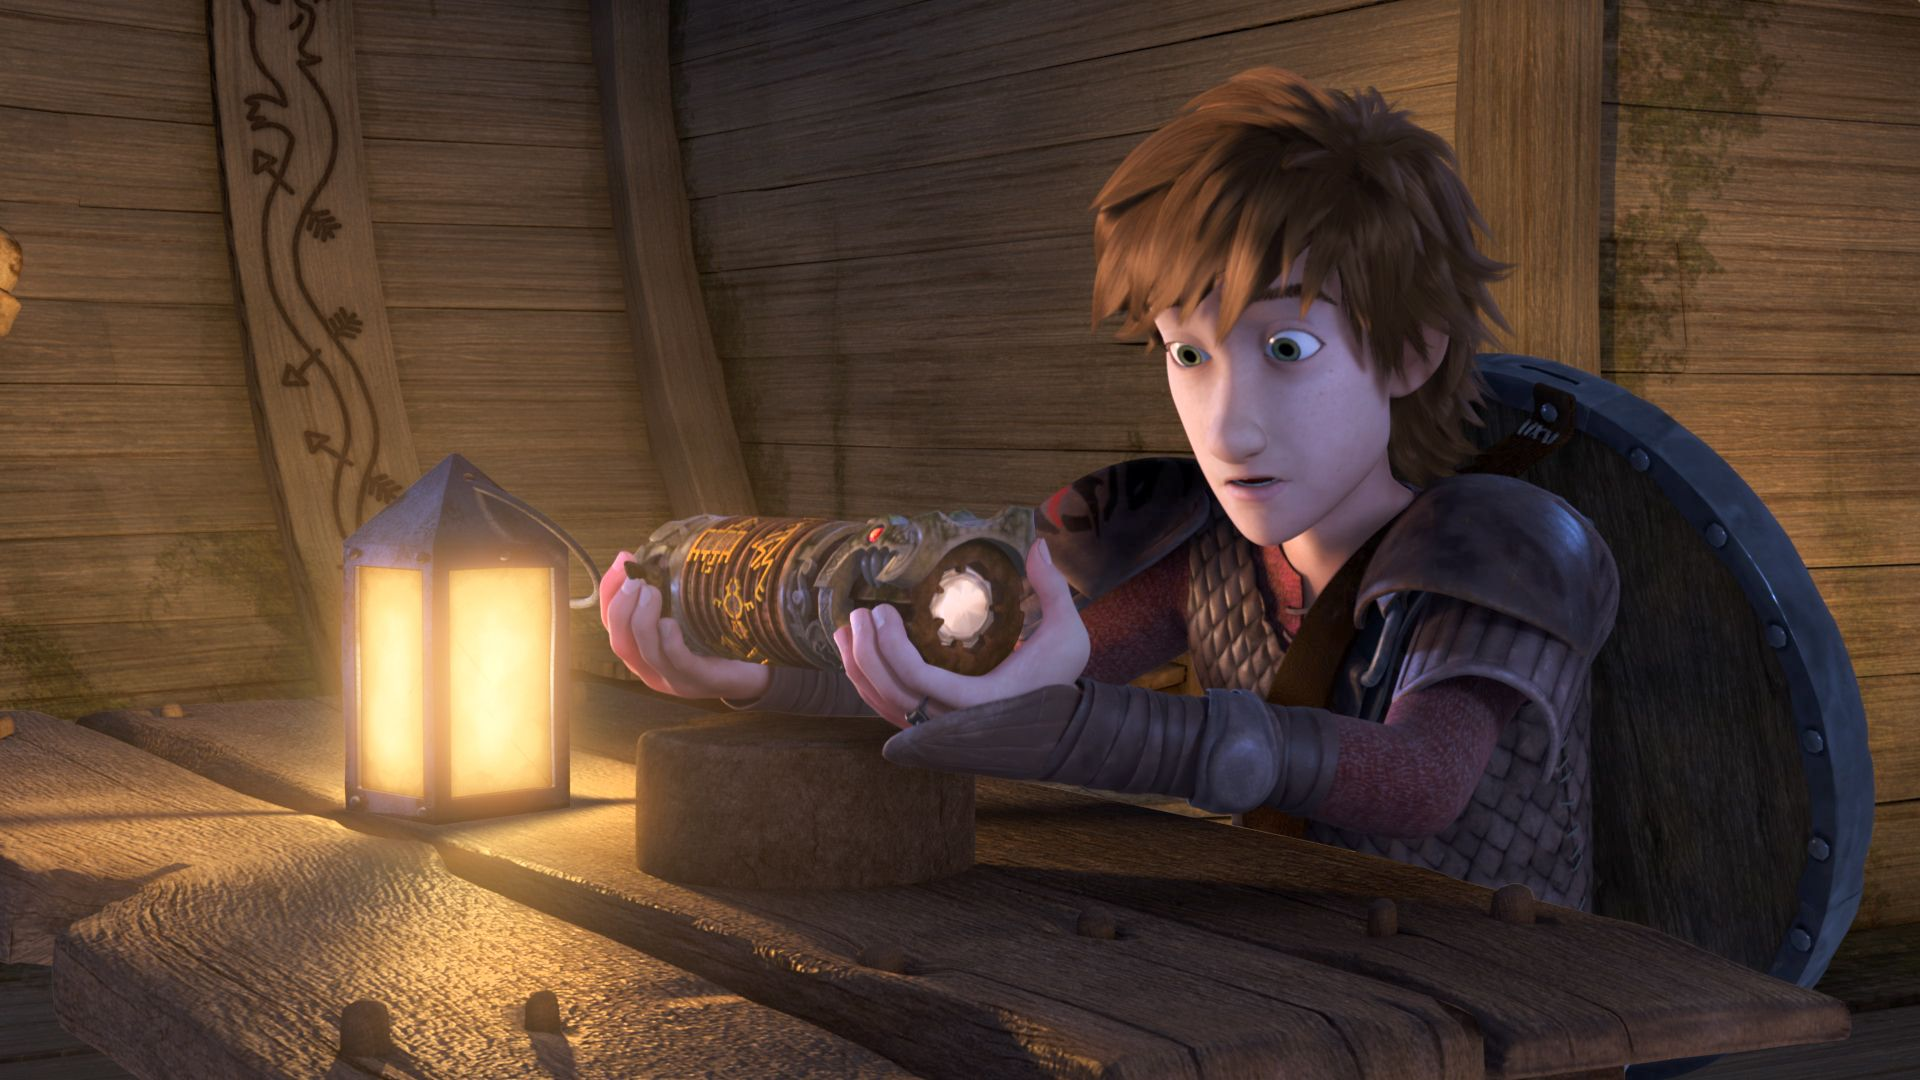 Dragons race to the edge 15 things to know collider dragons race to the edge hiccup ccuart Images